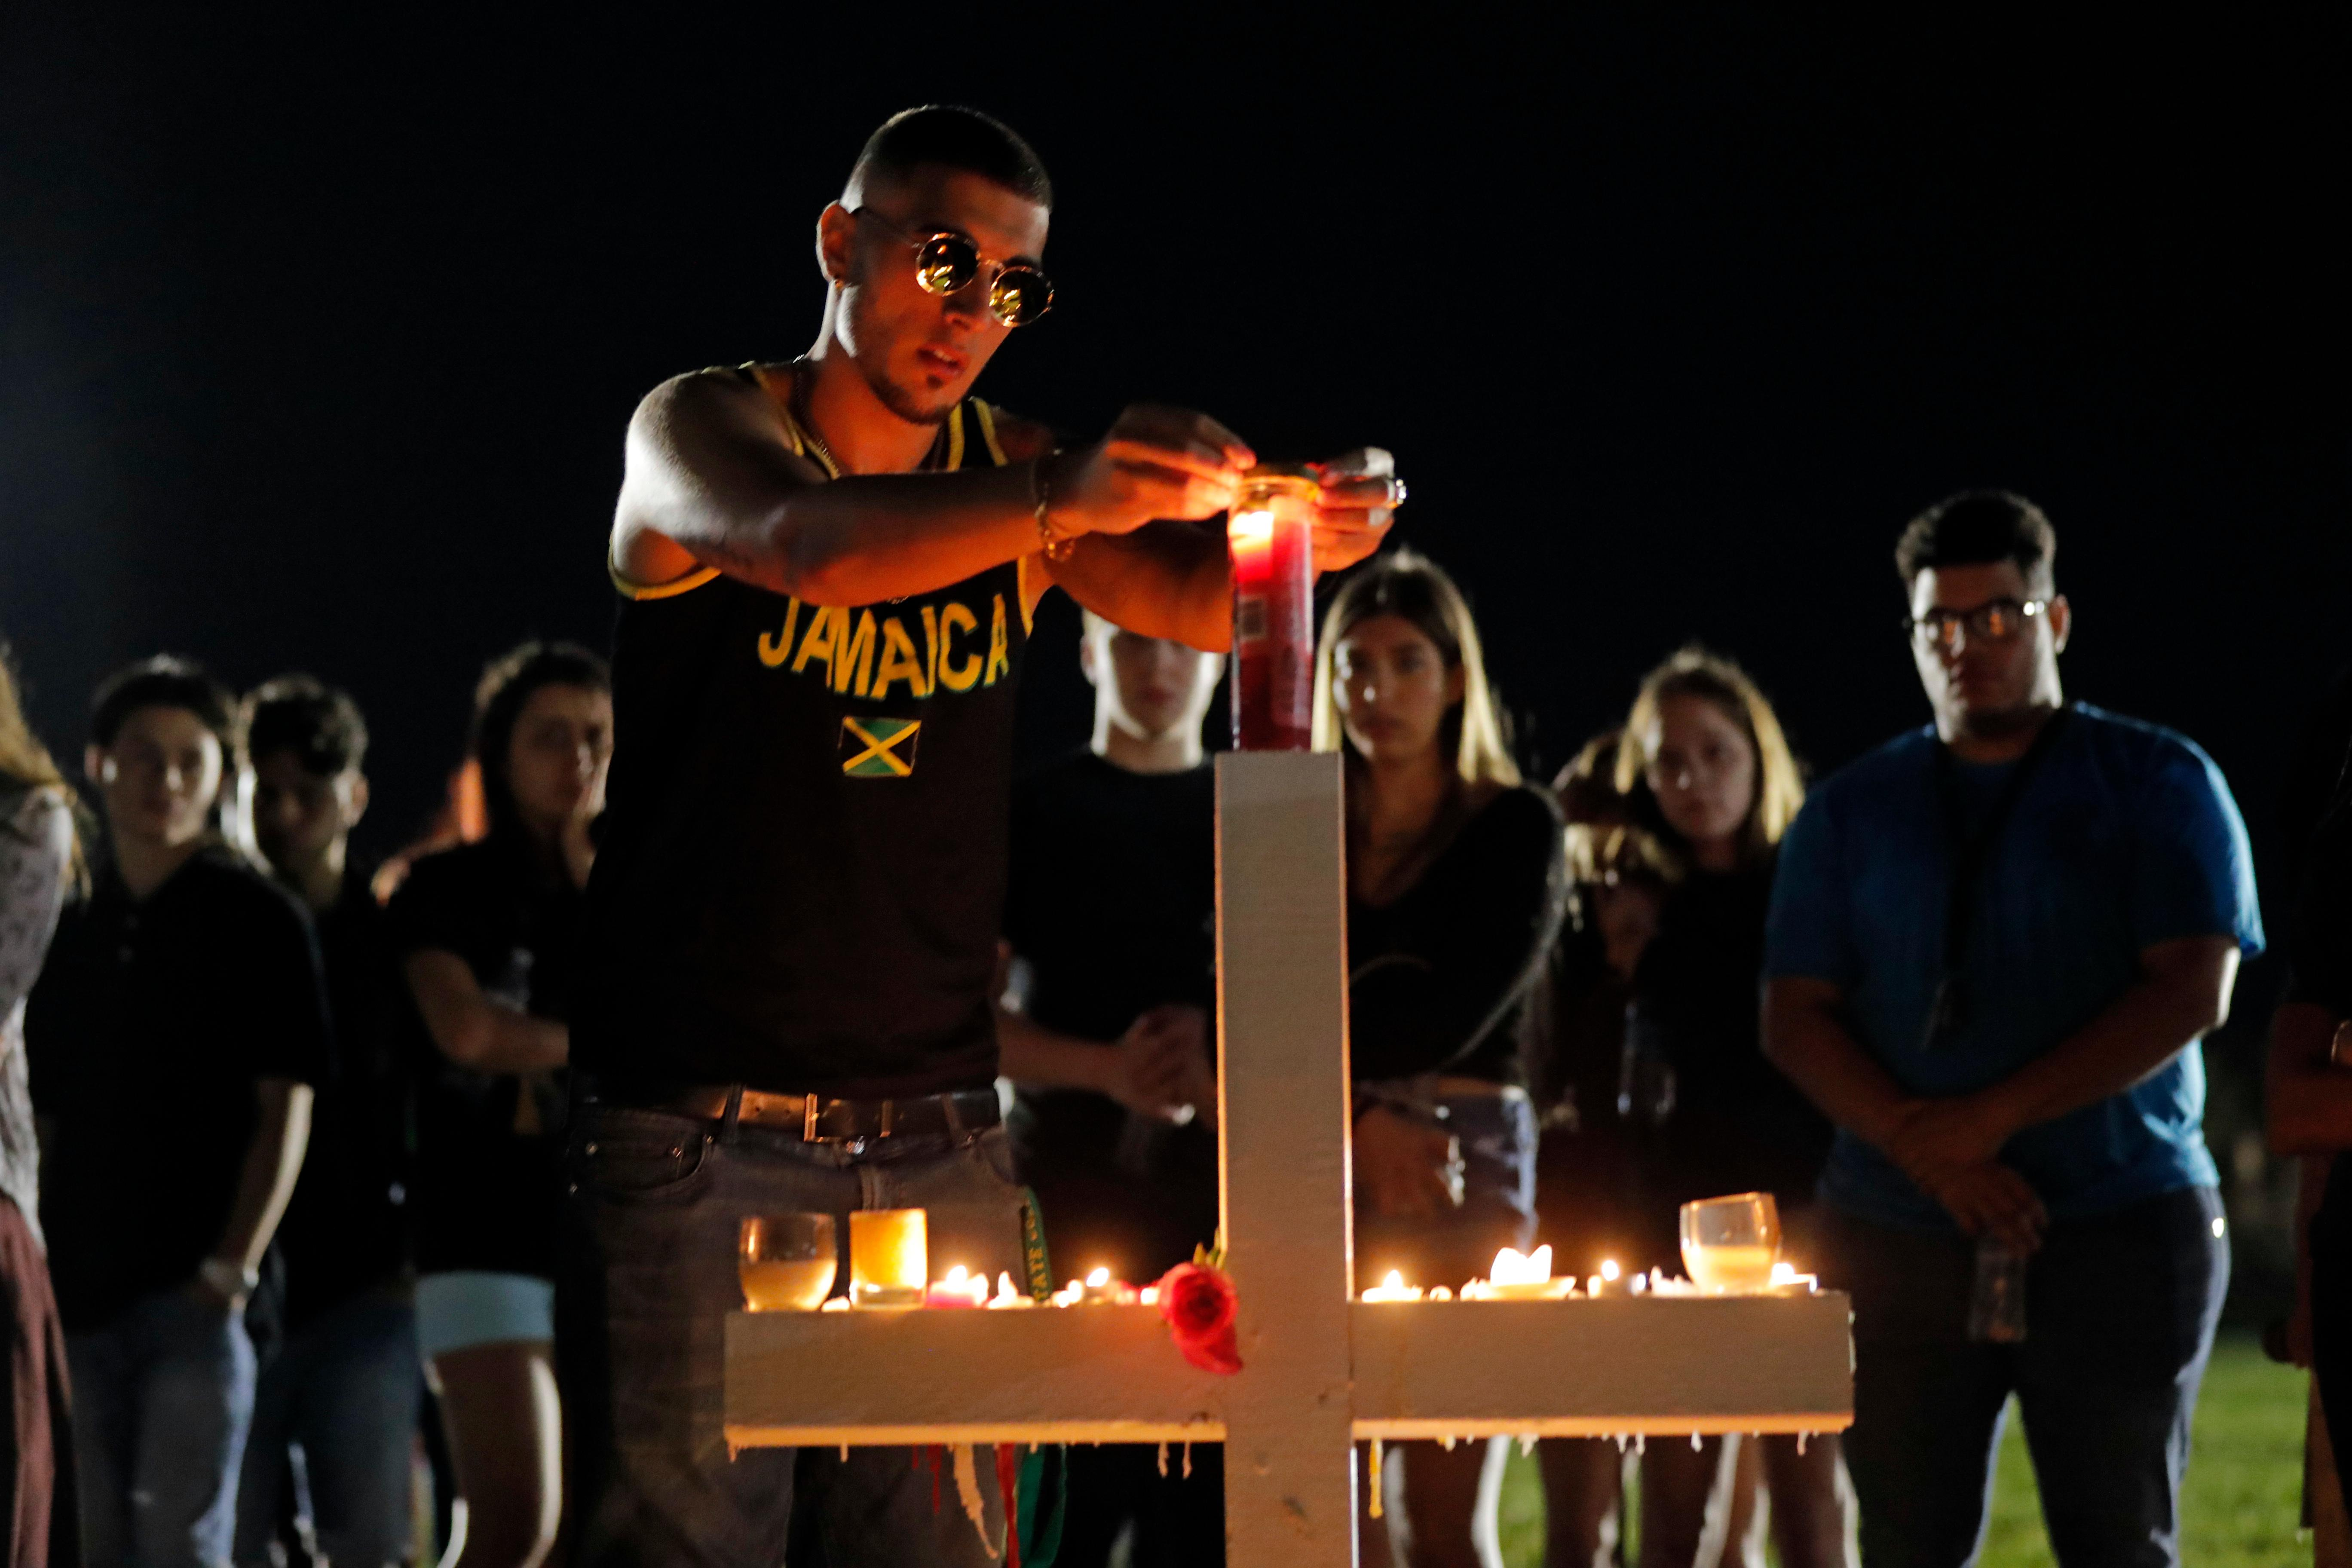 Joey Kandil, 18, a recent graduate of Marjory Stoneman Douglas High School, places a ring around a candle on one of seventeen crosses, after a candlelight vigil for the victims of the Wednesday shooting at the school, in Parkland, Fla., Thursday, Feb. 15, 2018. (AP Photo/Gerald Herbert)<p></p>